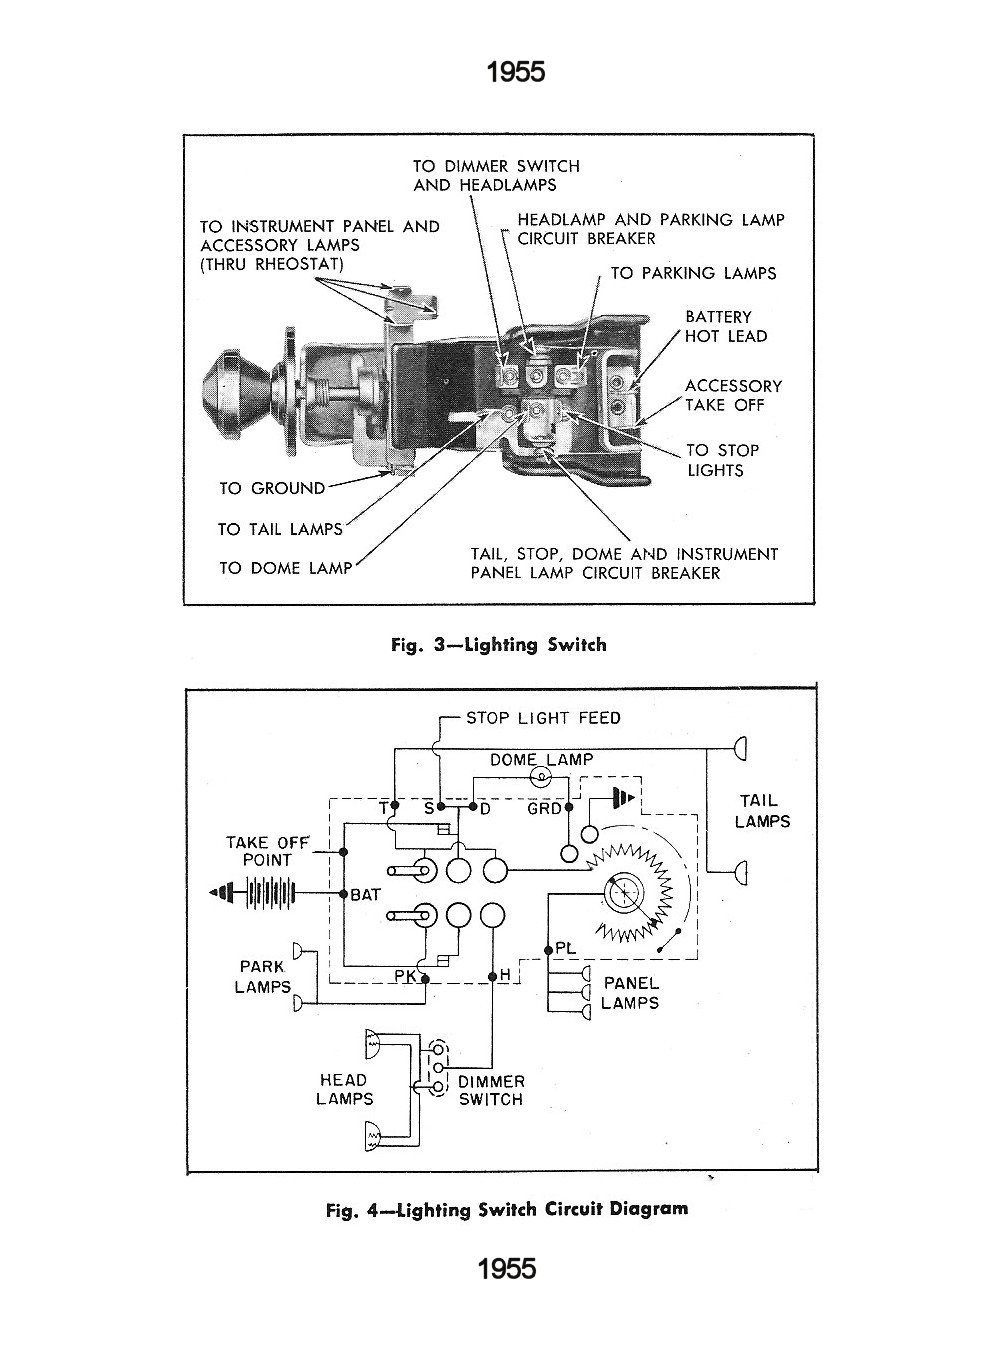 1953 gmc truck wiring diagram wiring diagramwiring diagram for 1950 chevy truck online wiring diagramchevy wiring diagrams wiring diagram for 1958 chevy